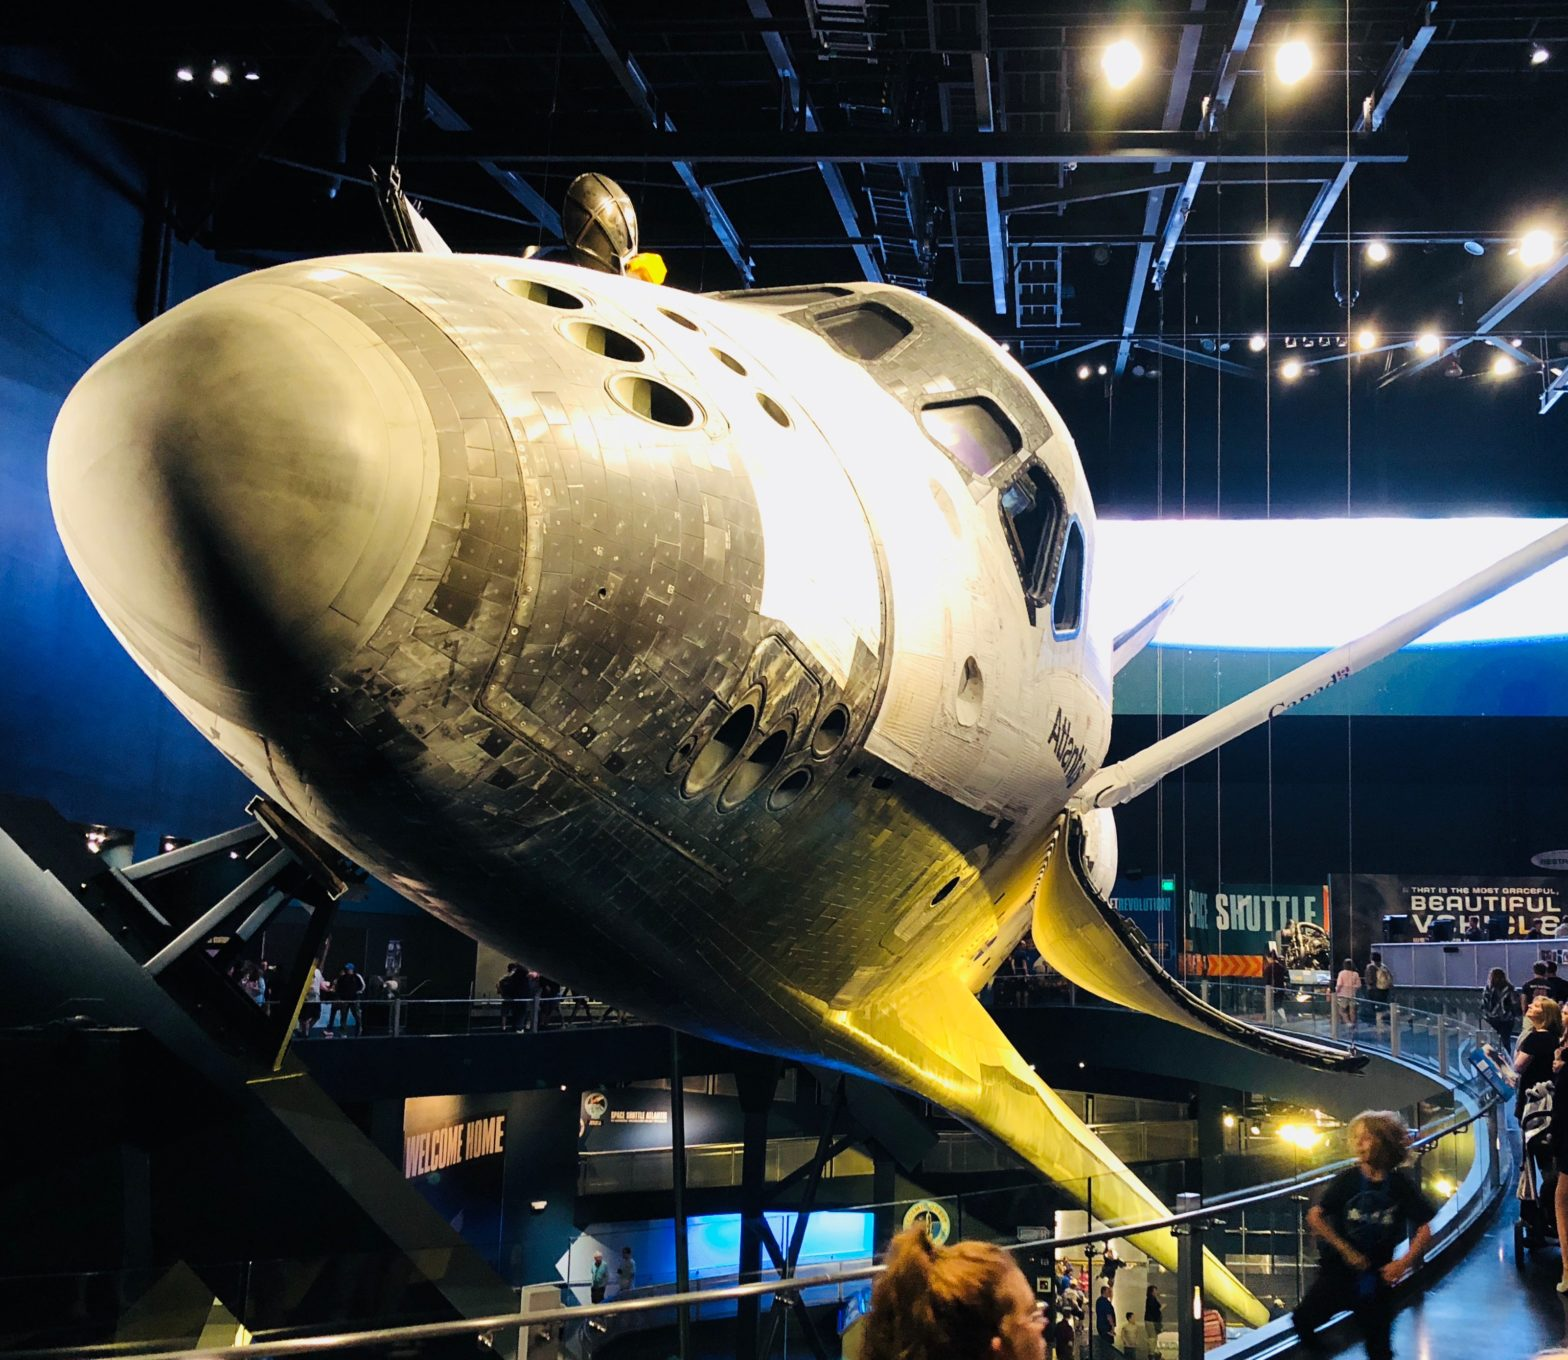 Mission NASA #familyvacation #vacationwithkids #traveltips